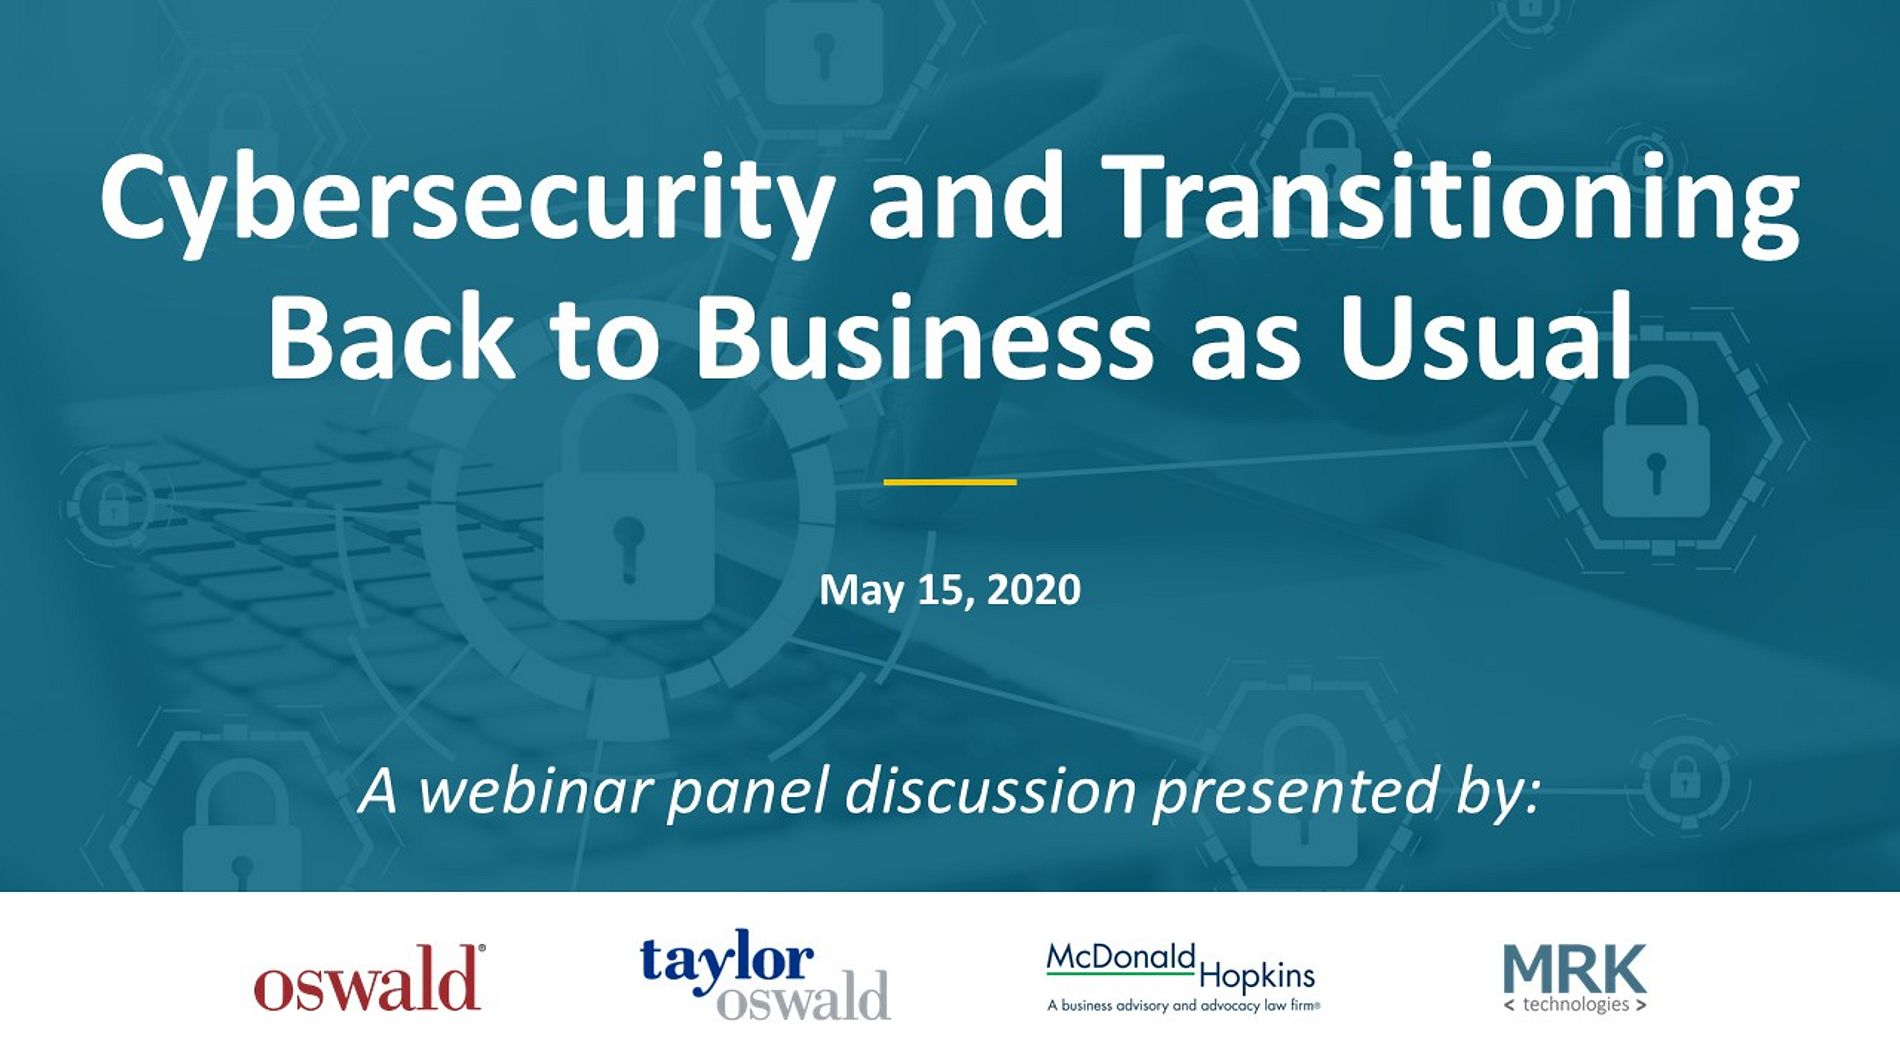 Cybersecurity Webinar May 15